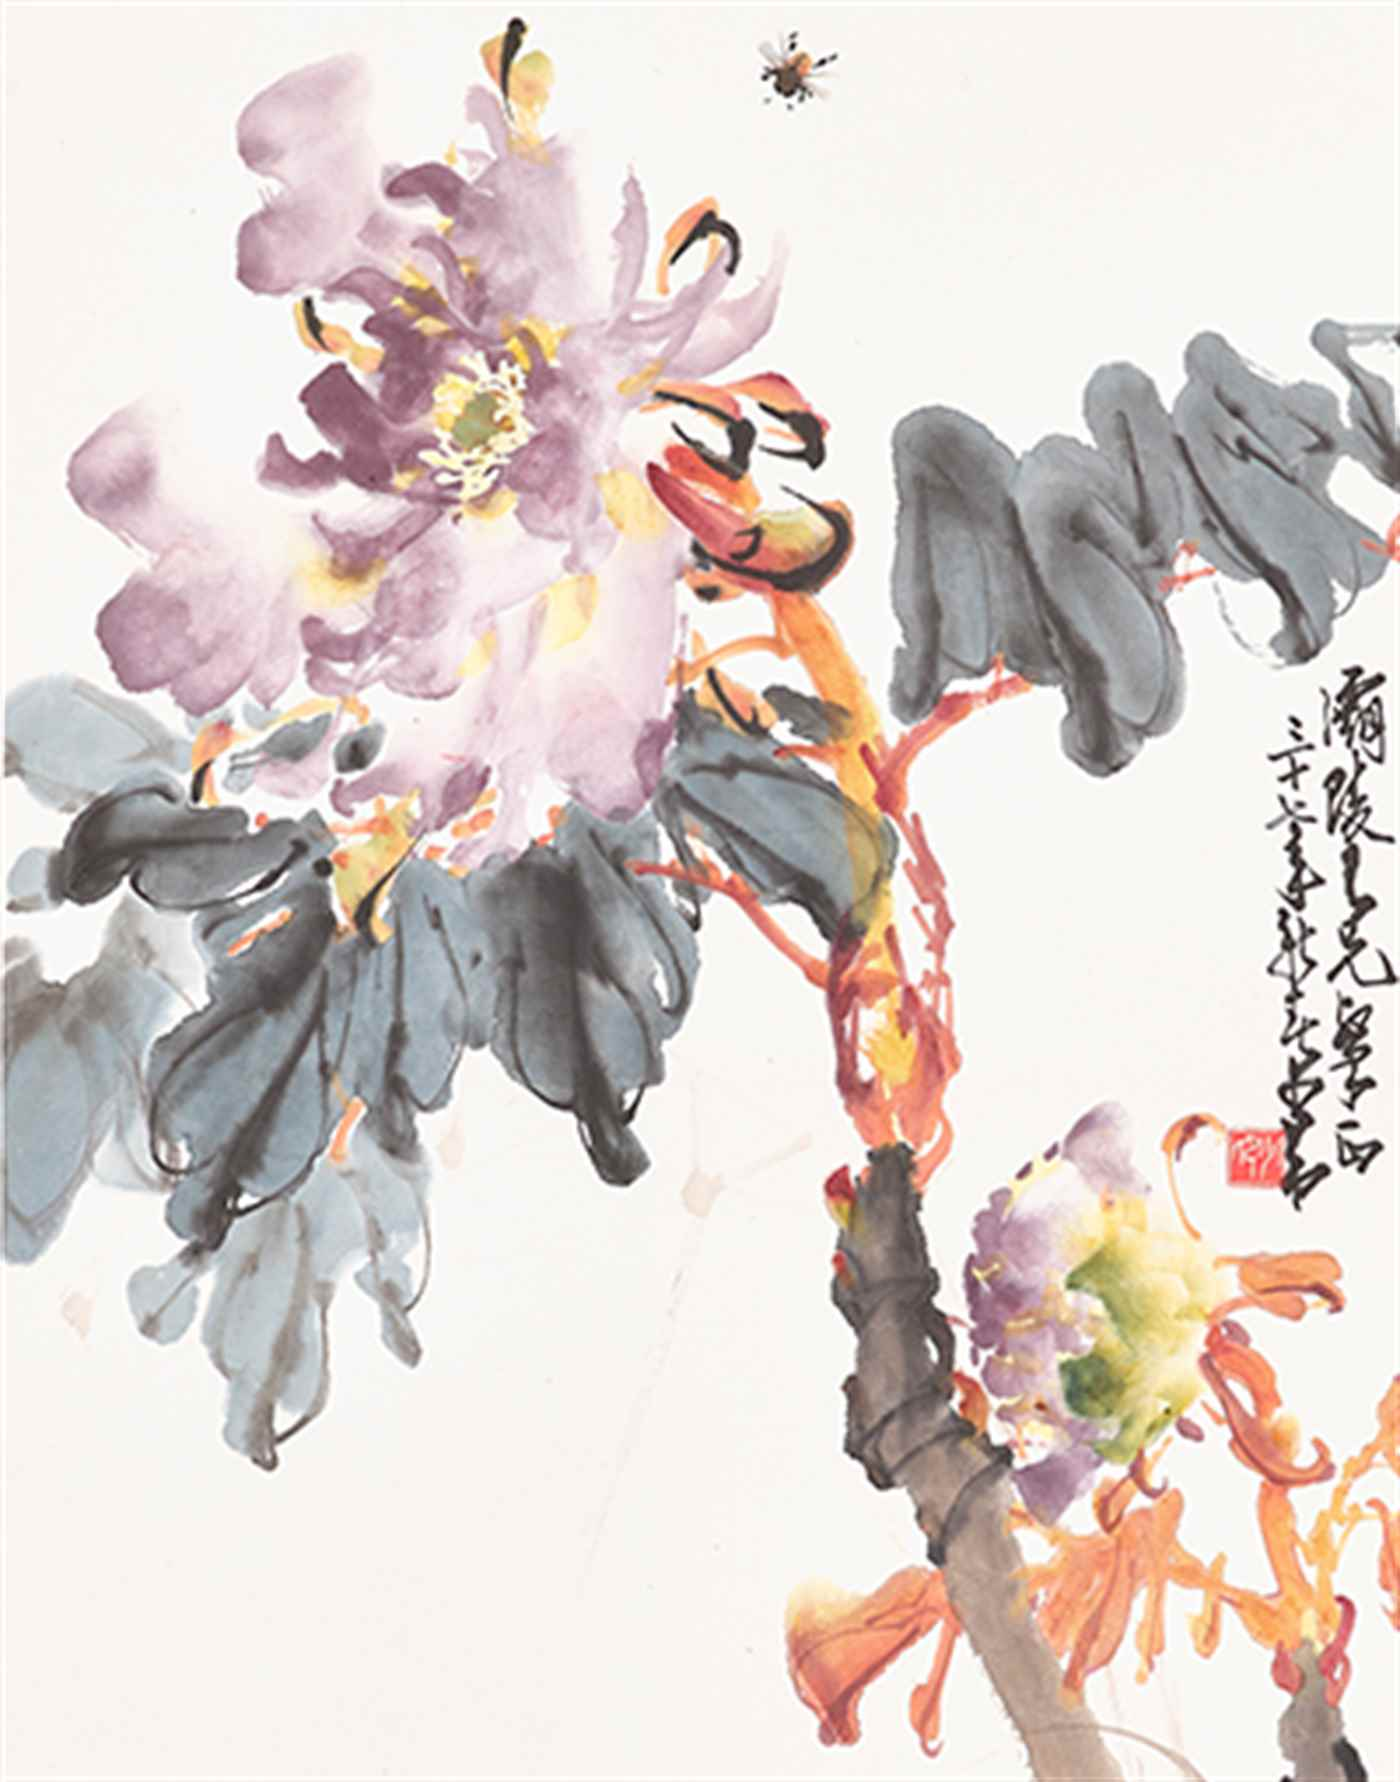 Exquisite Eye Chinese Paintings Online